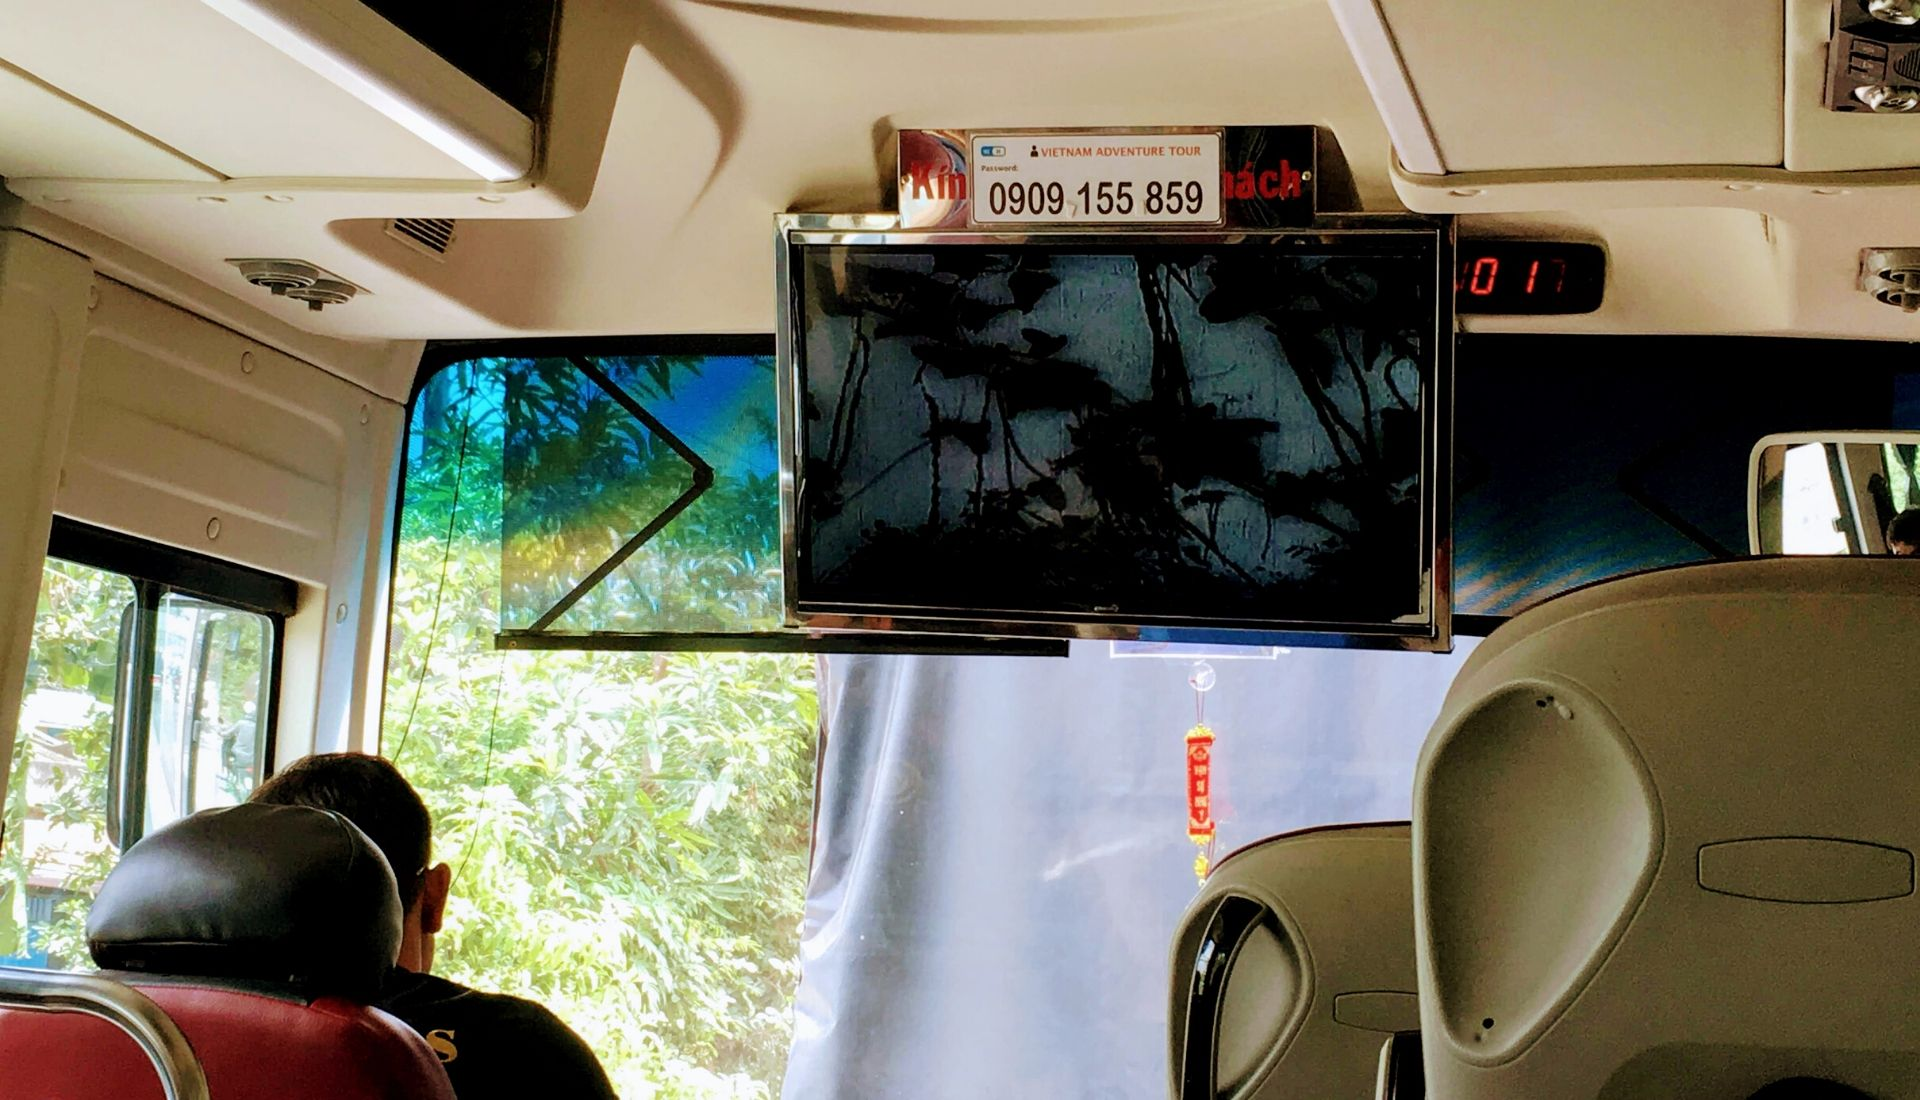 Watching the movie in the mini bus